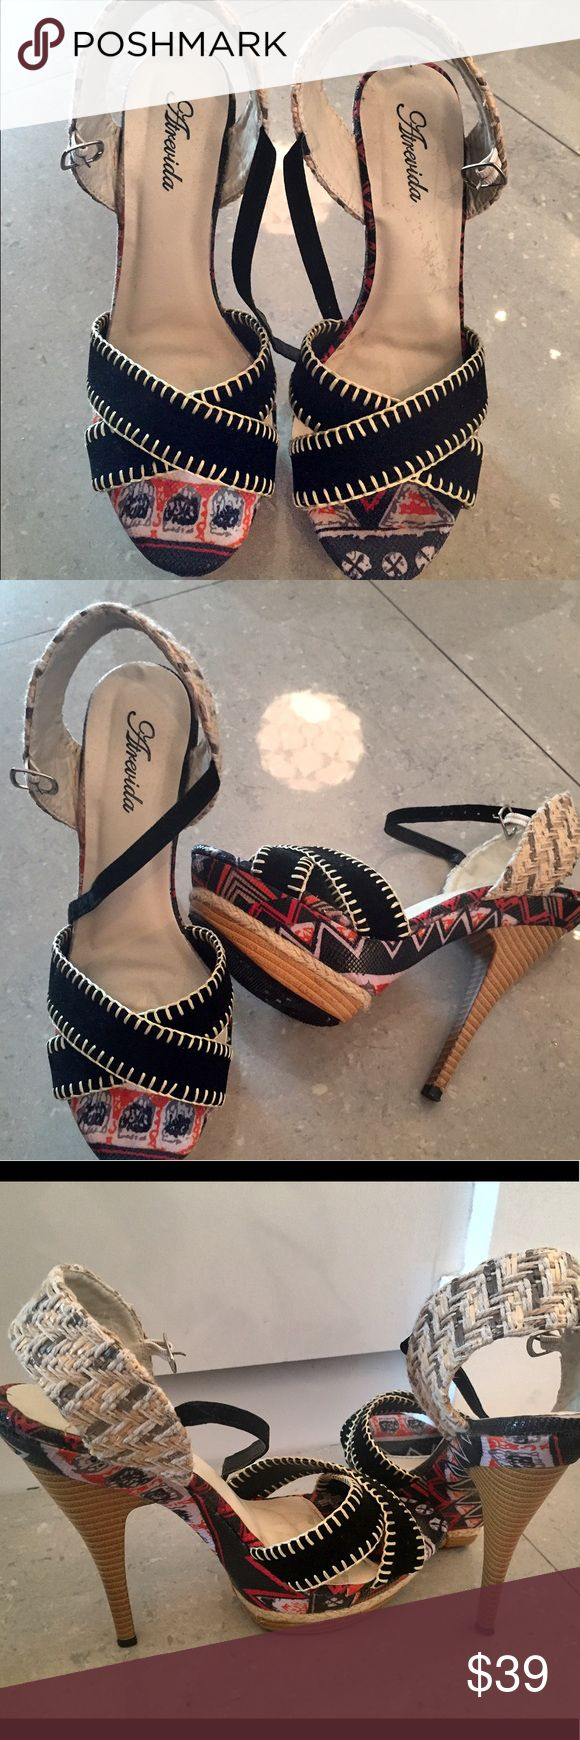 Sexy and fun high heel sandals! Almost brand new, Brazilian made sandals. These hot pair are perfect for summer, with suede, woven leather accents and colorful bottoms! 💃🏻👠 Atrevida Shoes Sandals